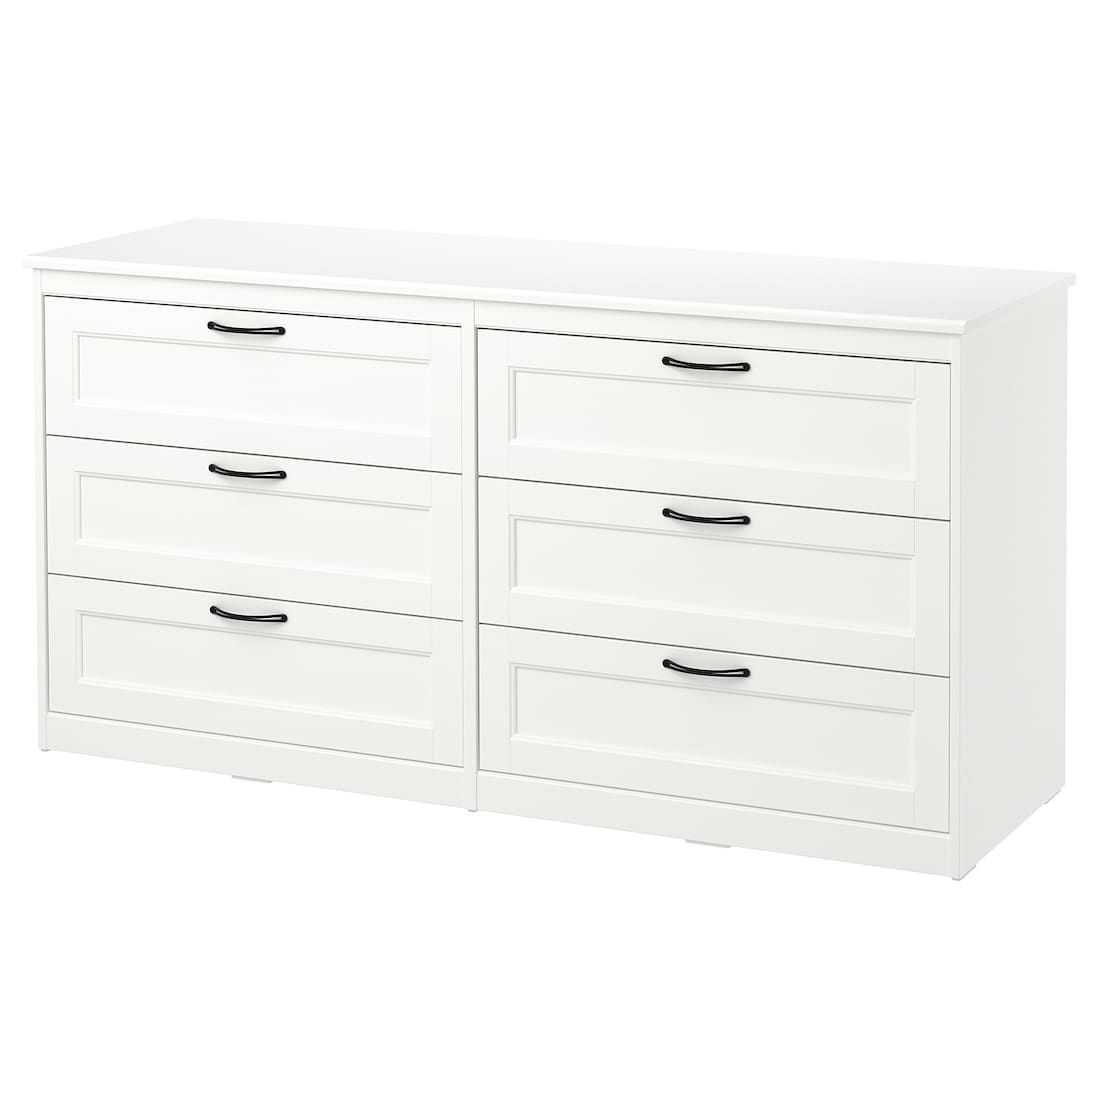 Songesand 6 Drawer Dresser White 63 3 8x31 7 8 Hemnes 8